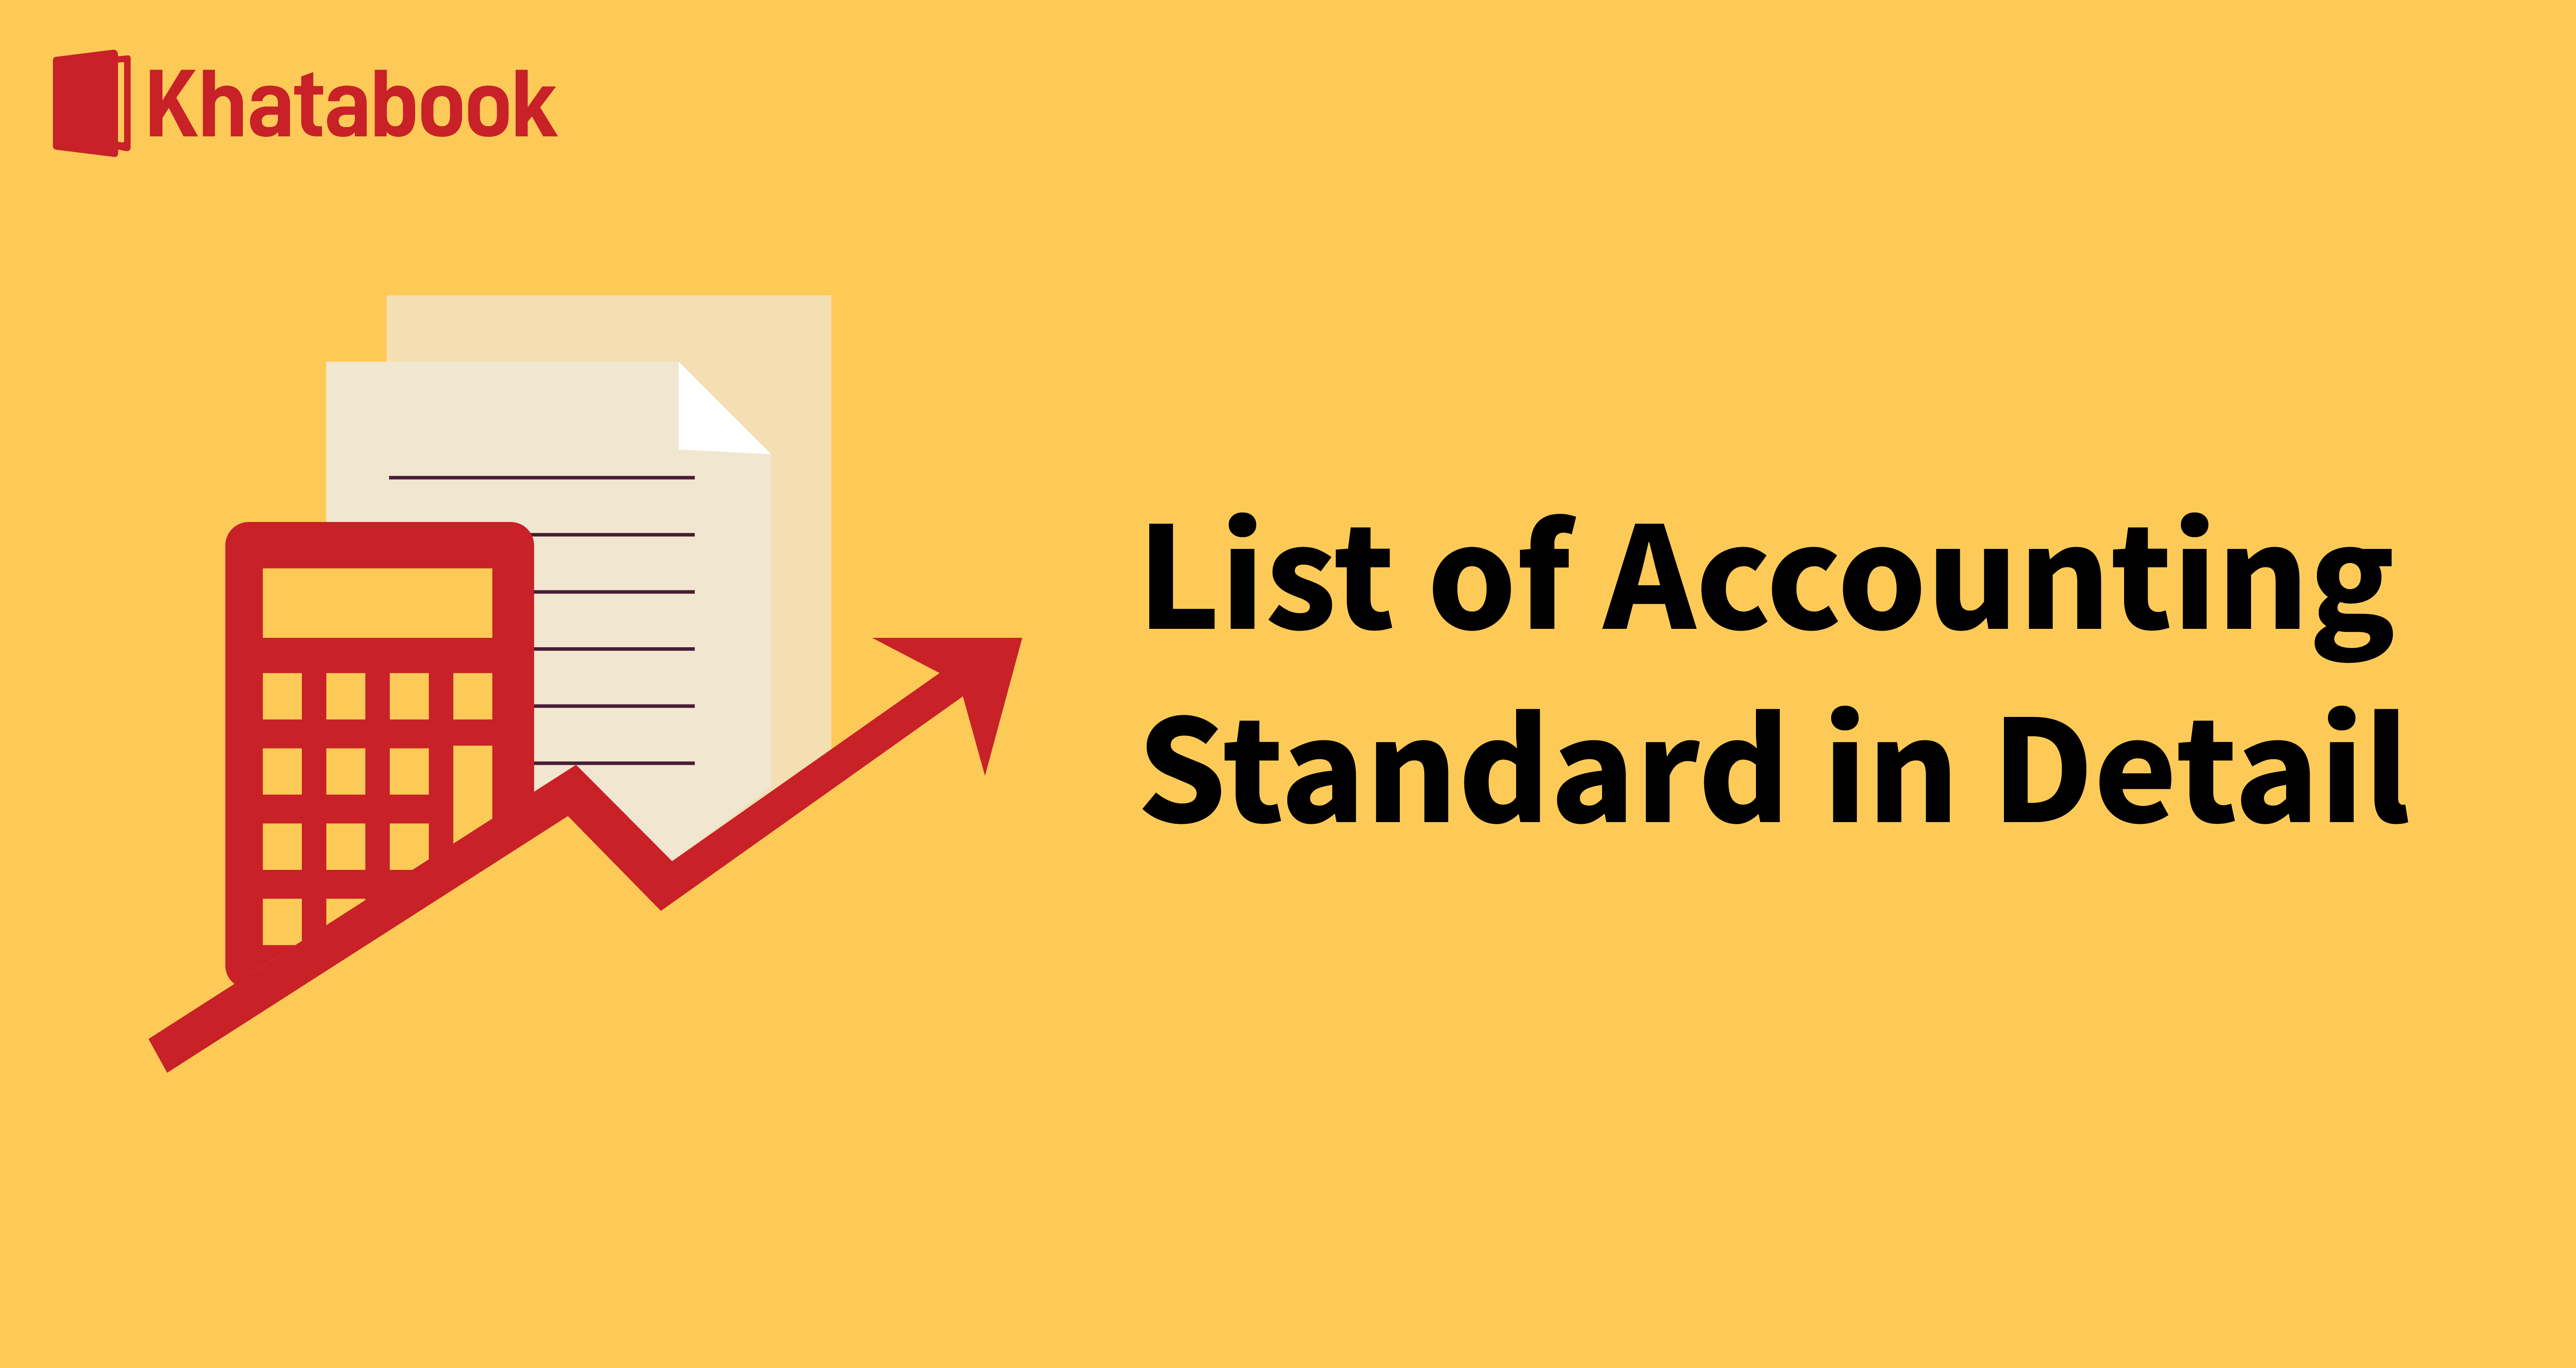 What is the List of Accounting Standard